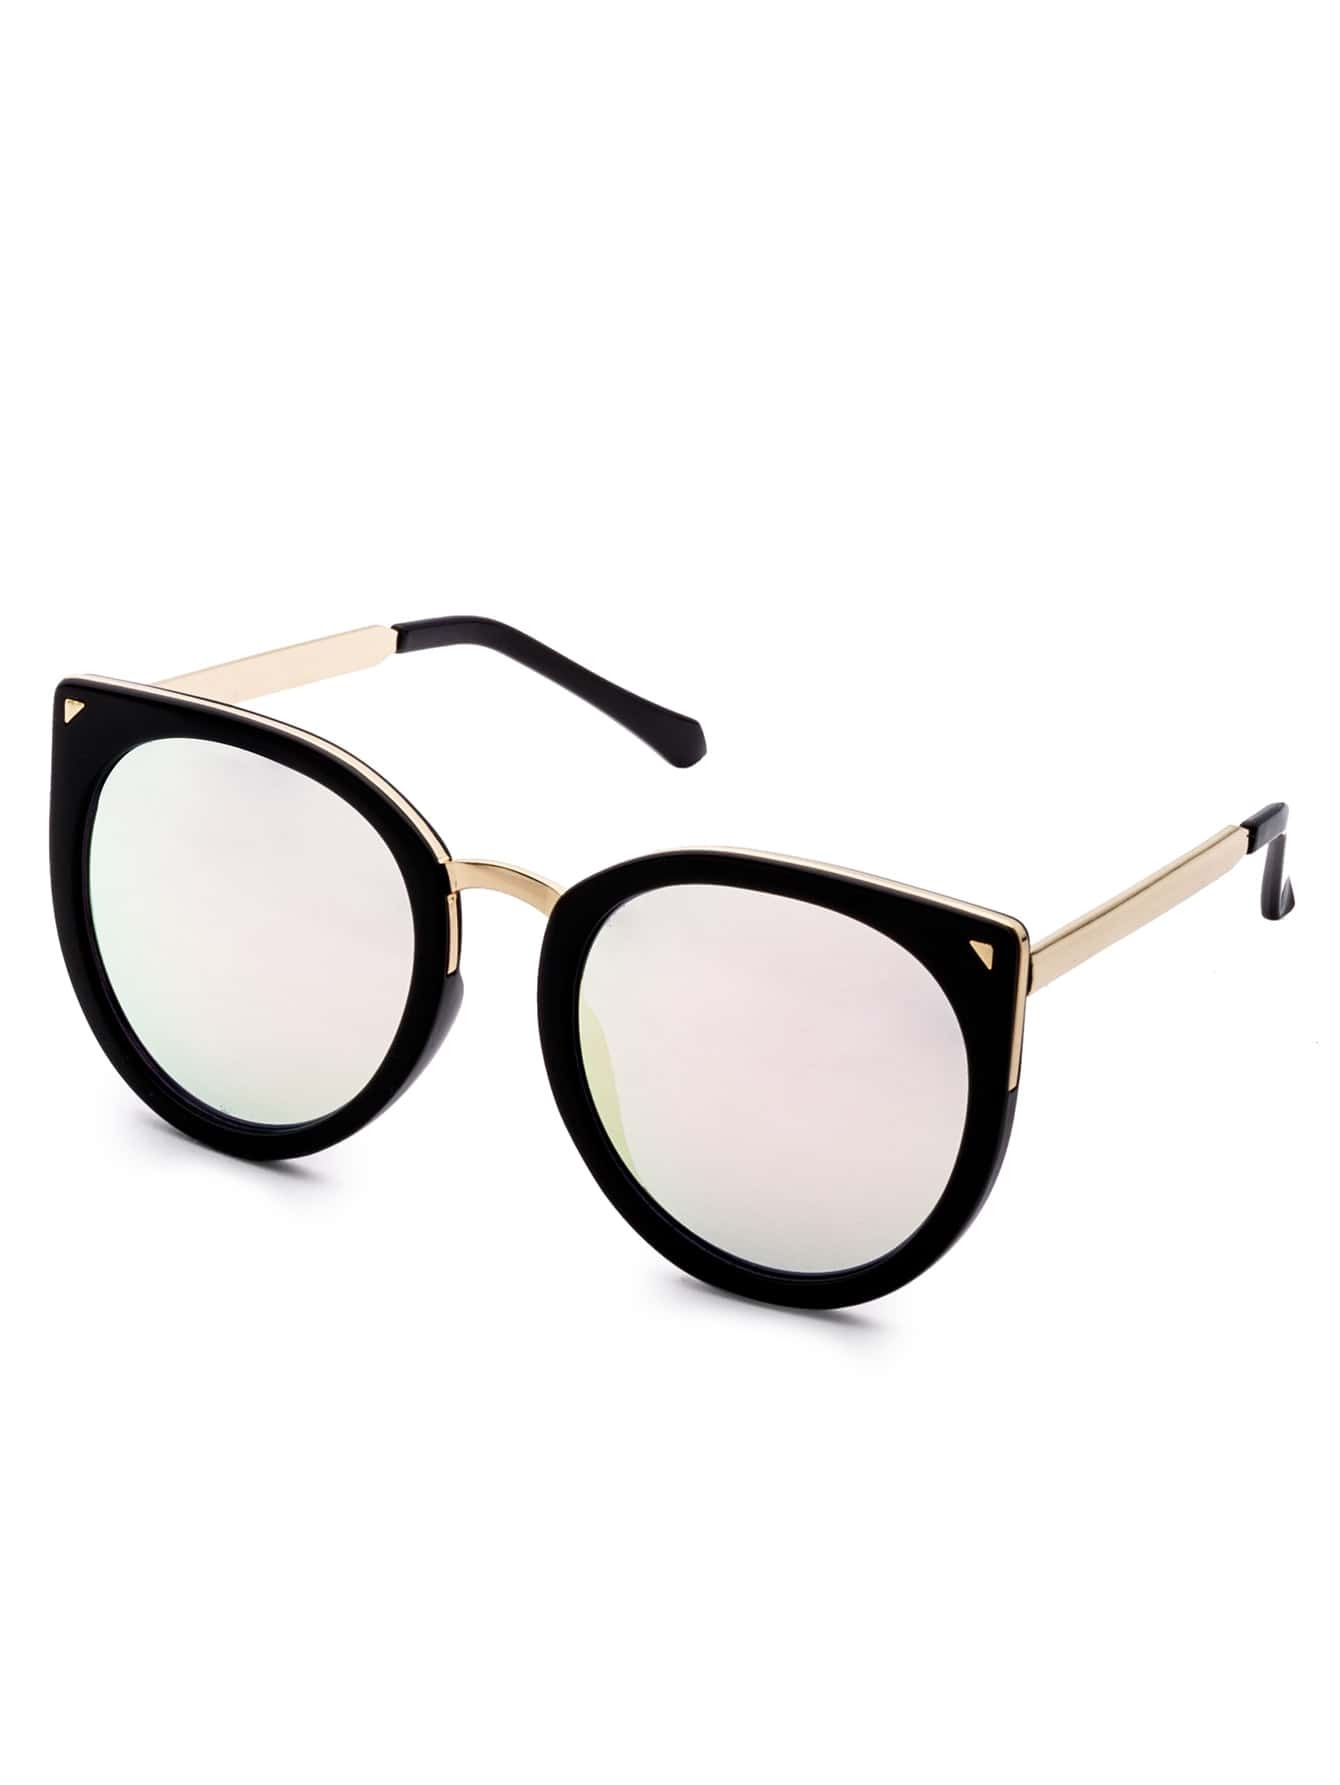 Black Metal Trim Pink Lens Cat Eye Sunglasses